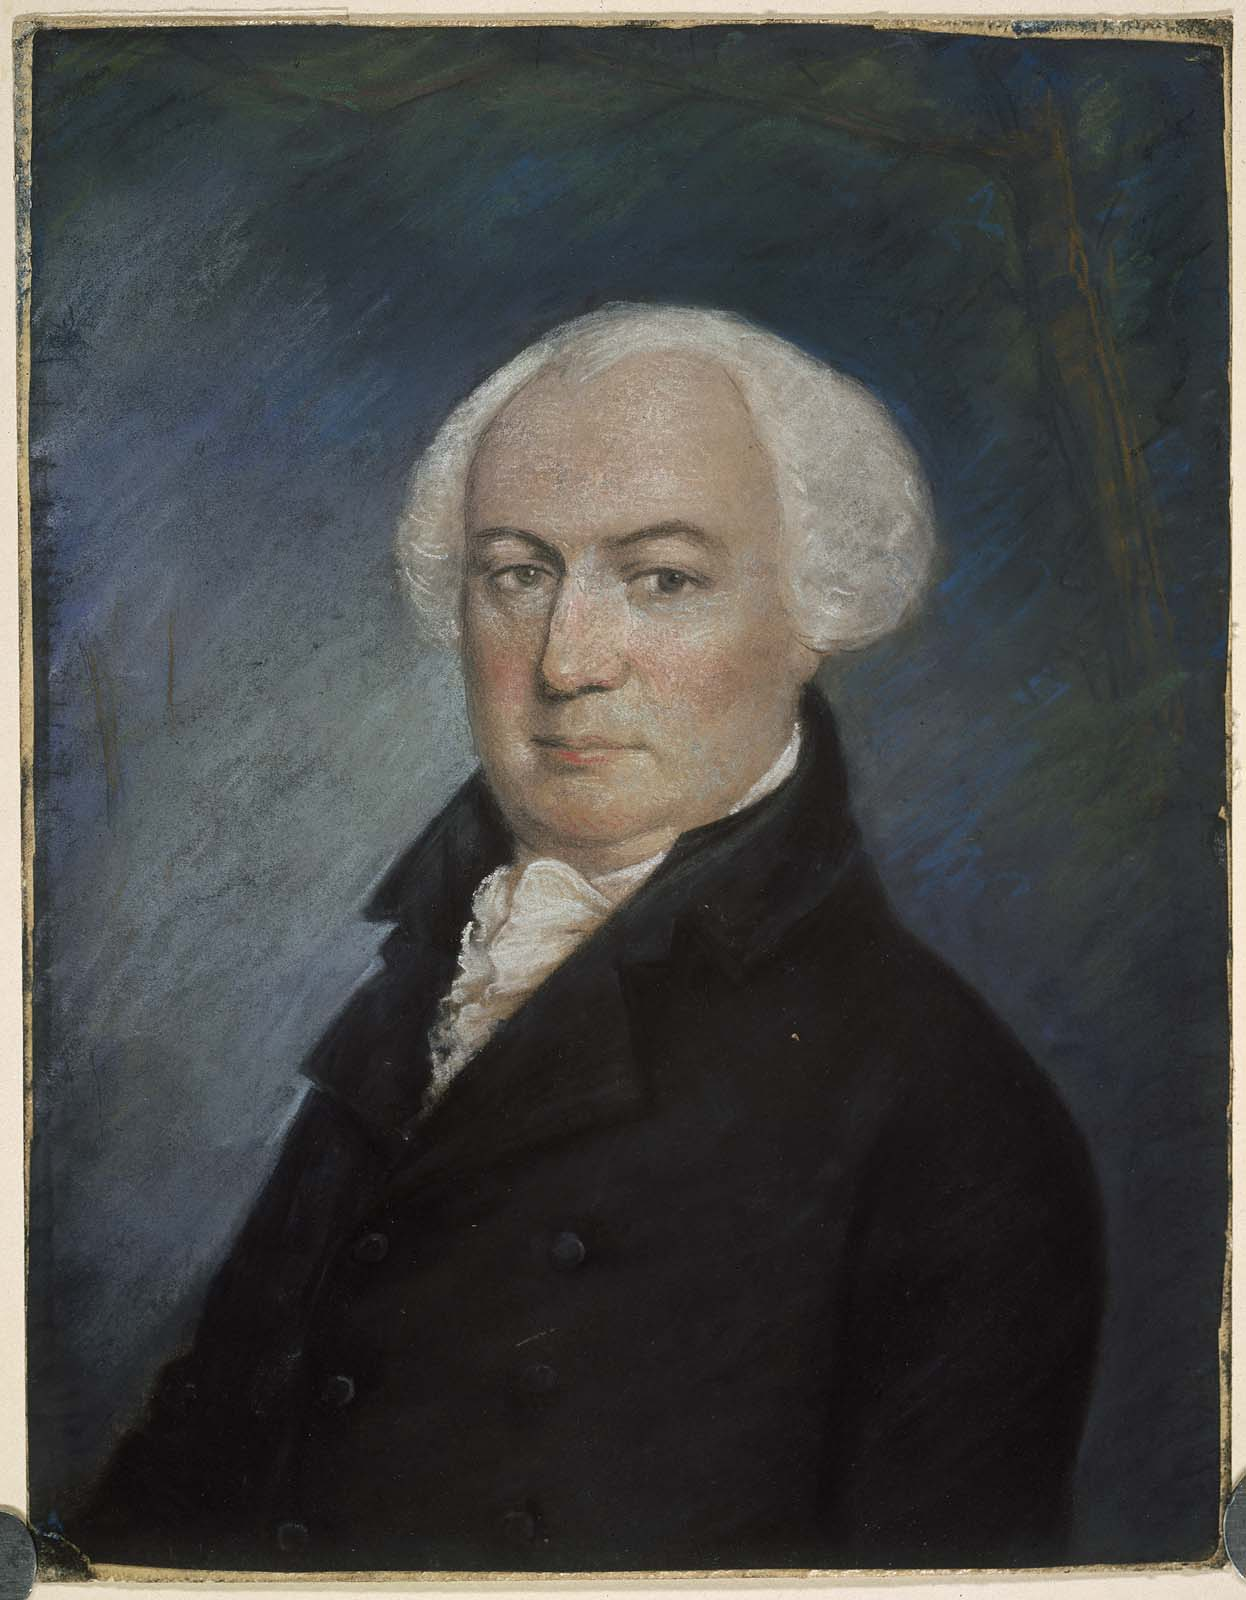 gouverneur morris questioning people Gouverneur morris agreed, but for another reason he said, i have long wished for another convention that would have the firmness to provide a strong central governmentwhich we are afraid to do james madison hated the idea.